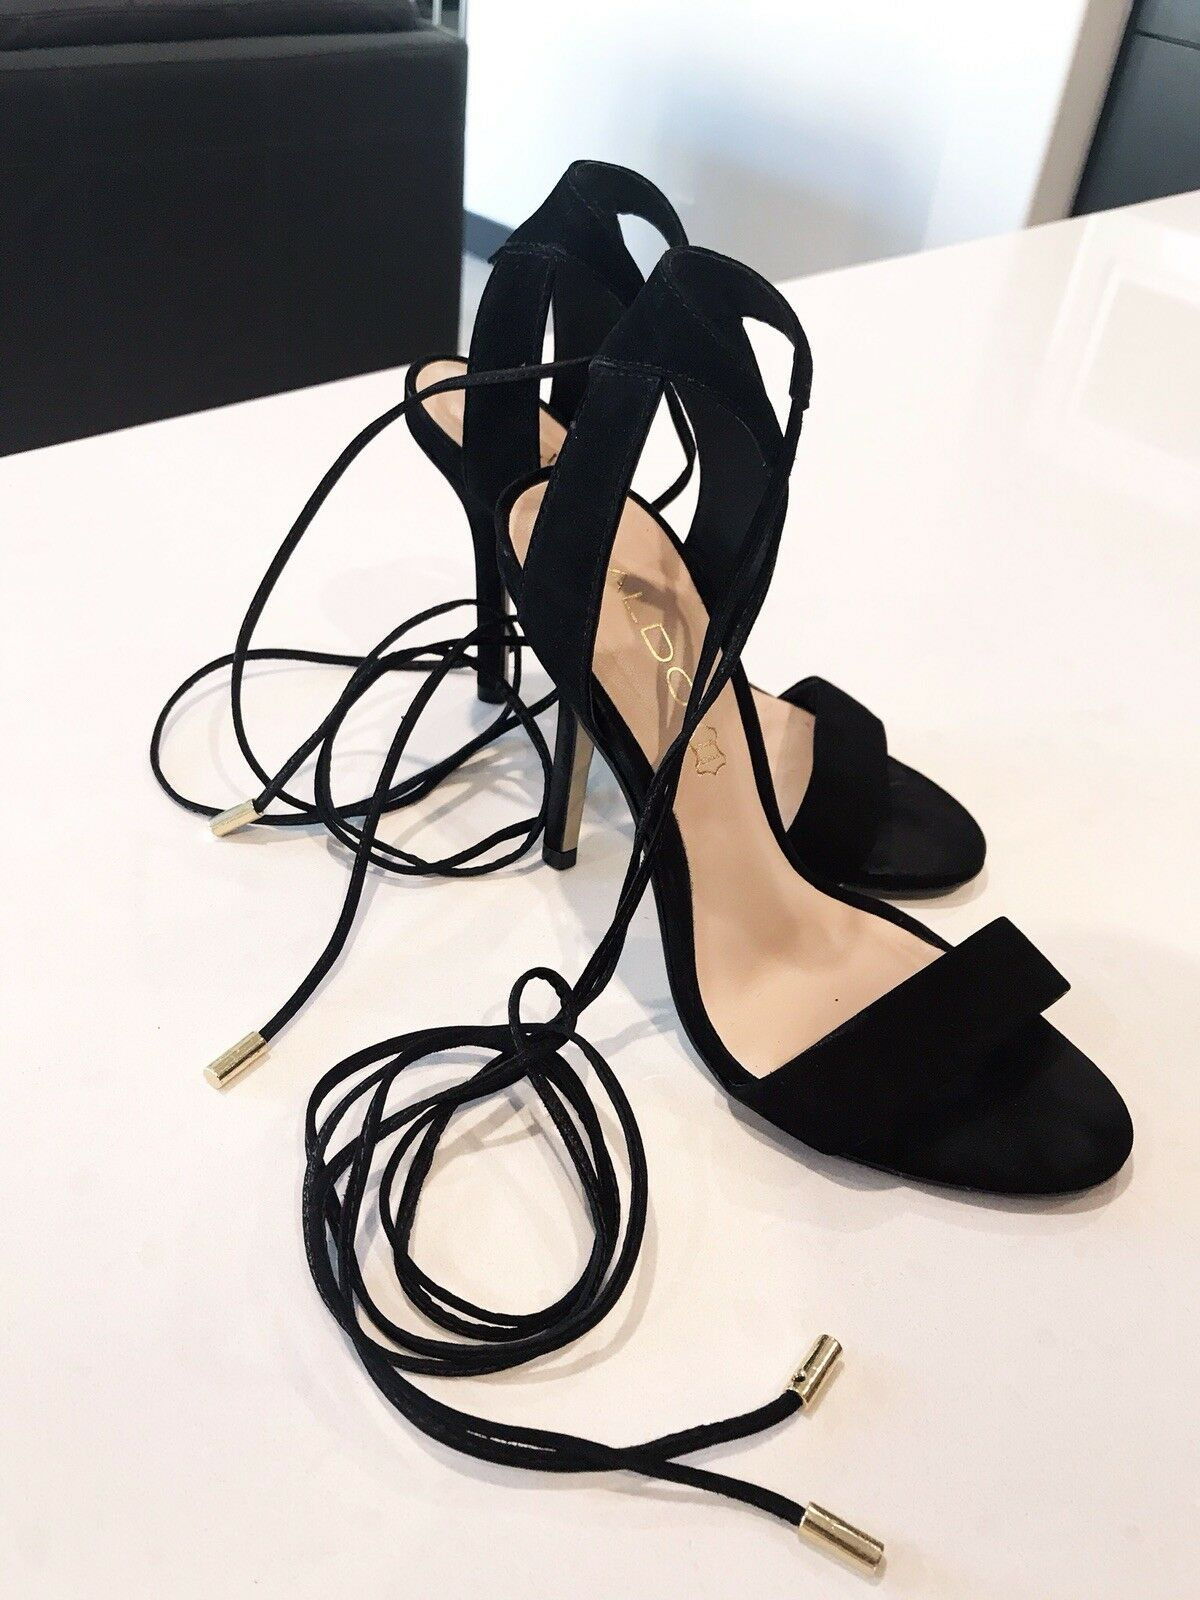 Sold Out Women's Aldo Black casarolo casarolo casarolo Leather Heels Tie Up  Sexy & Suede Size 6 ff2cd0